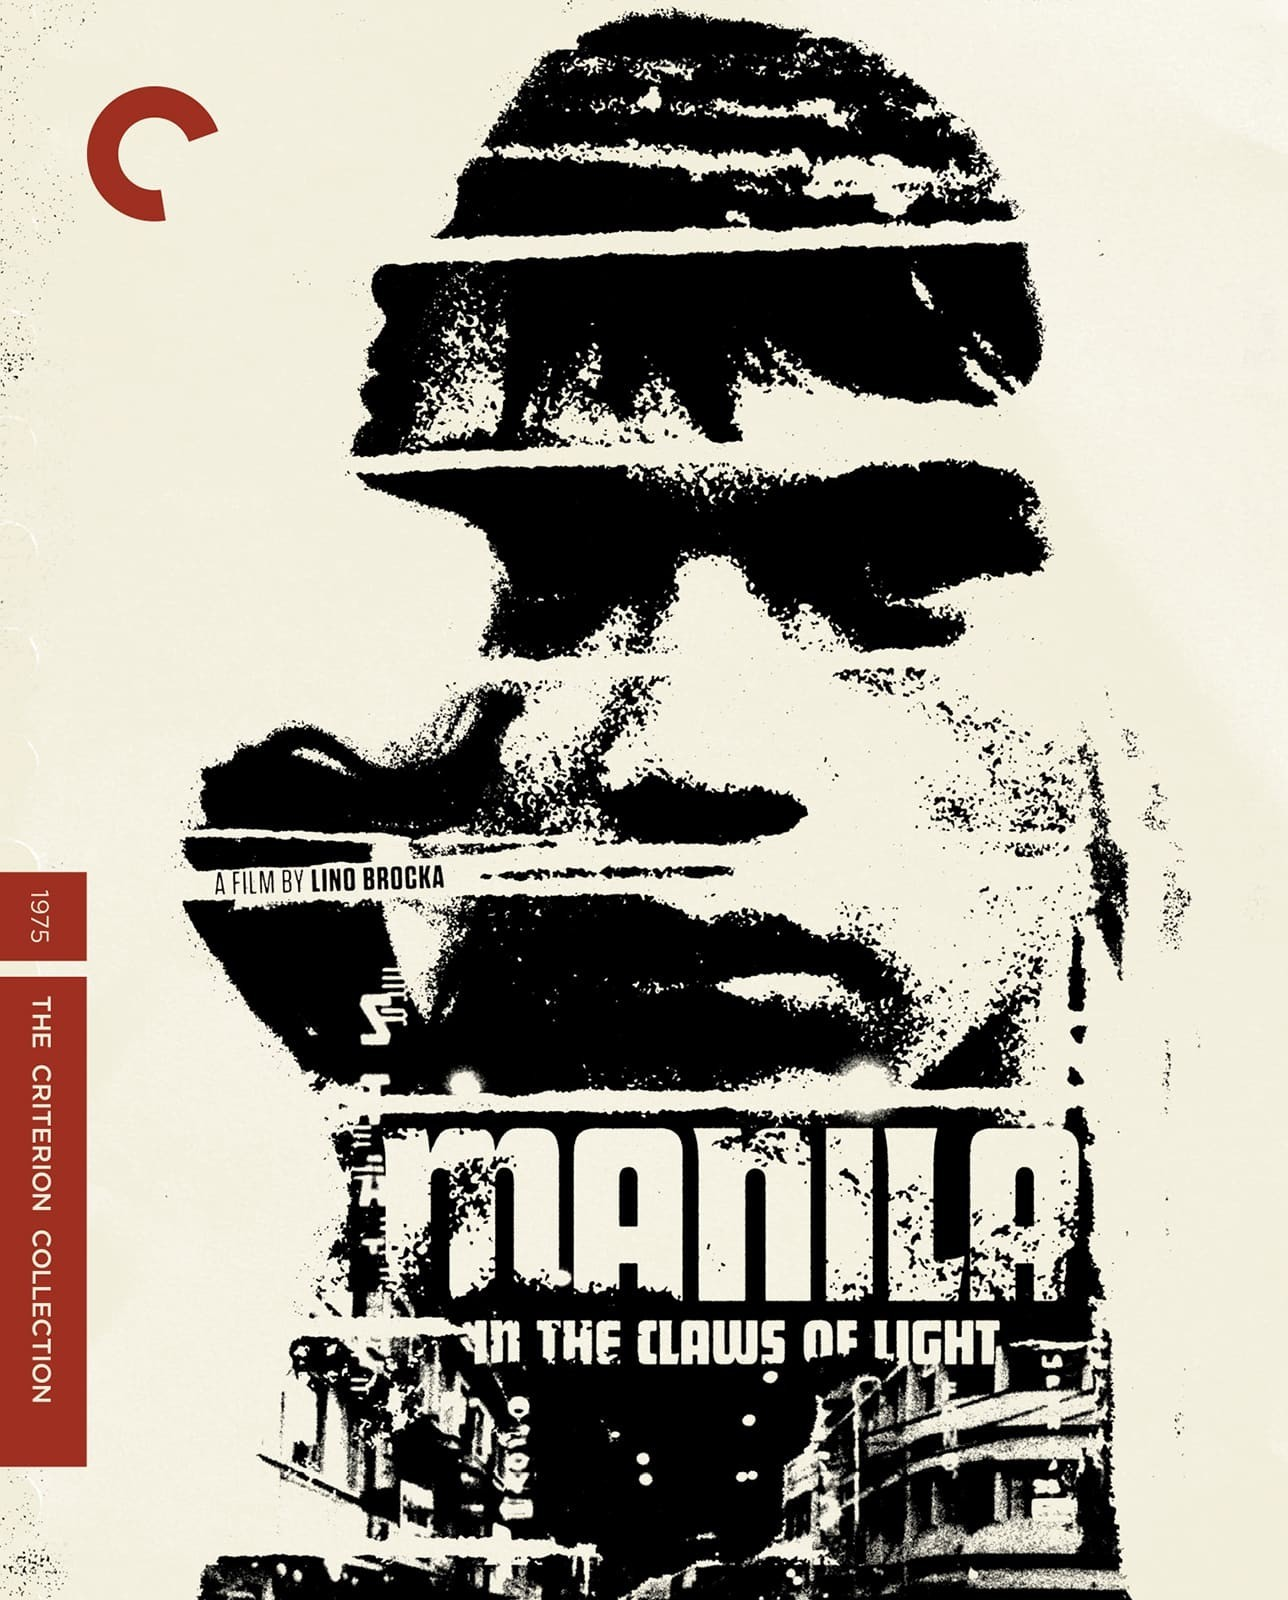 Manila in the Claws of Light (The Criterion Collection)(1975) Blu-ray